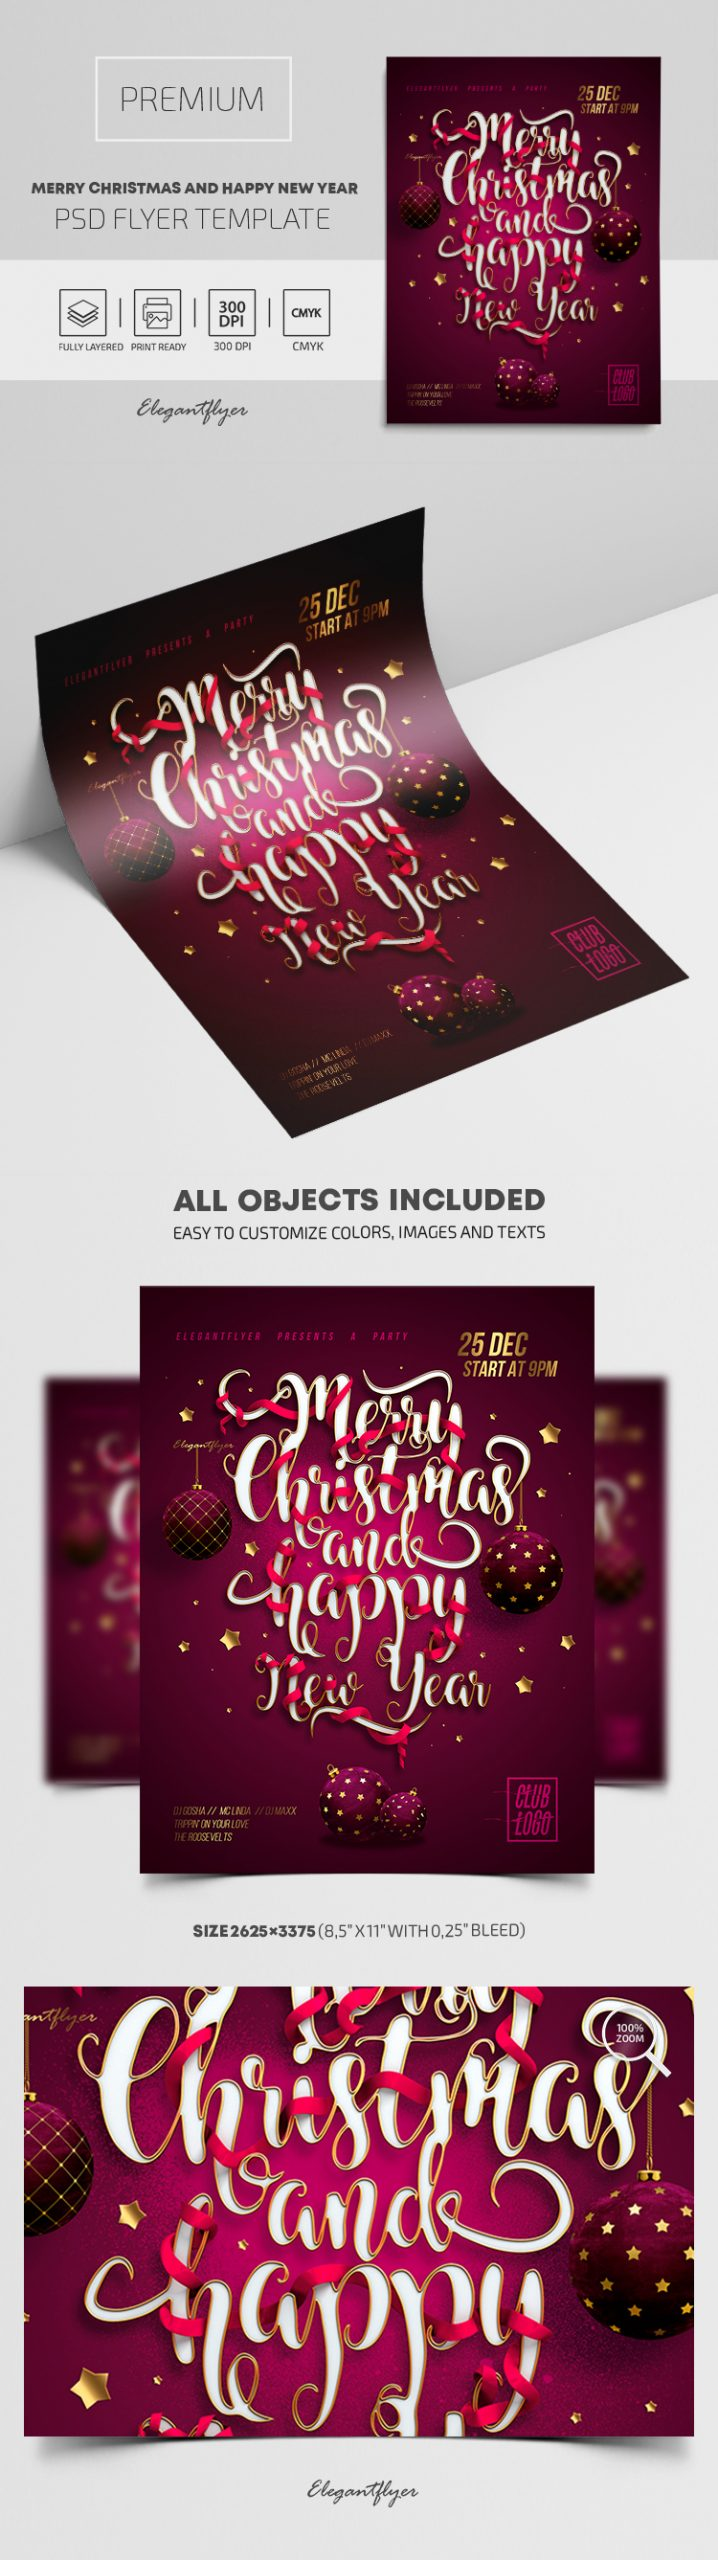 Merry Christmas and Happy New Year! – Premium PSD Flyer Template